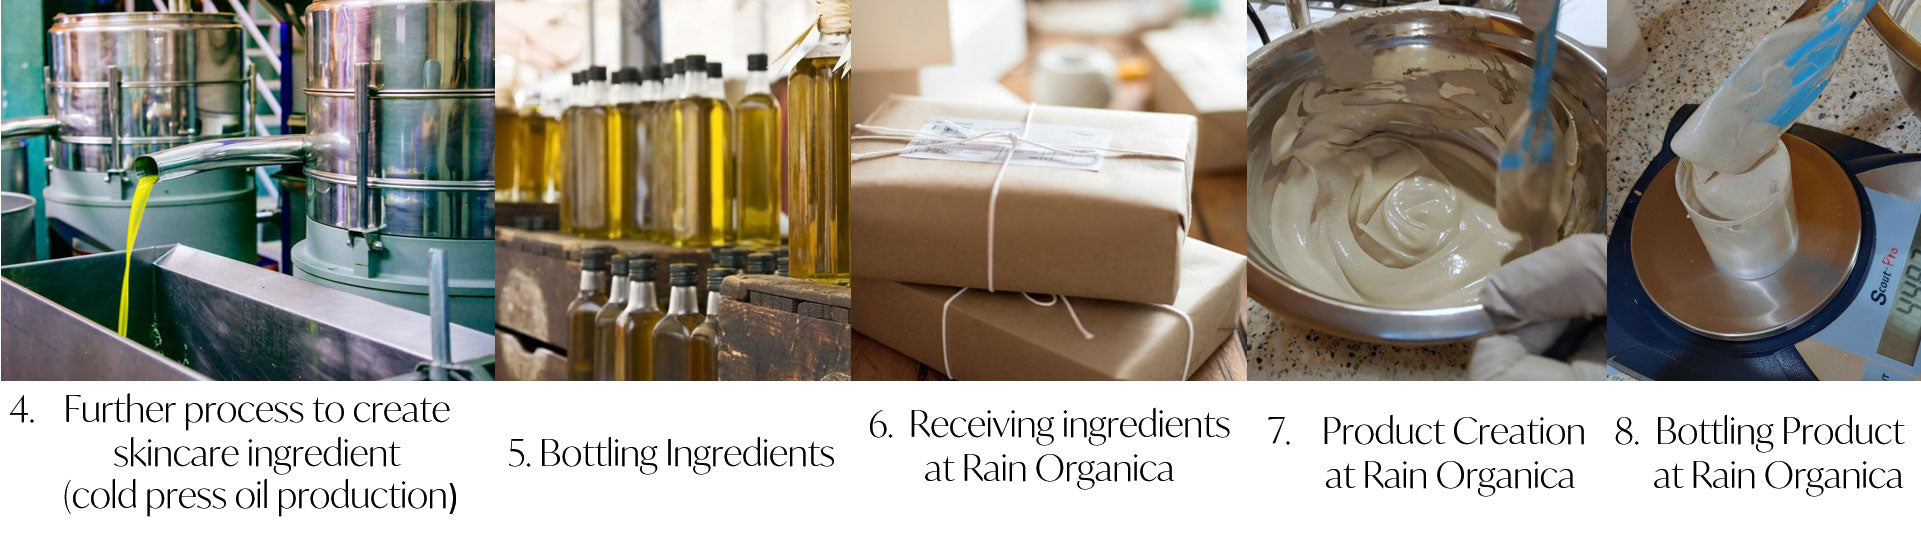 process for creating and bottling cold pressed oils for skincare